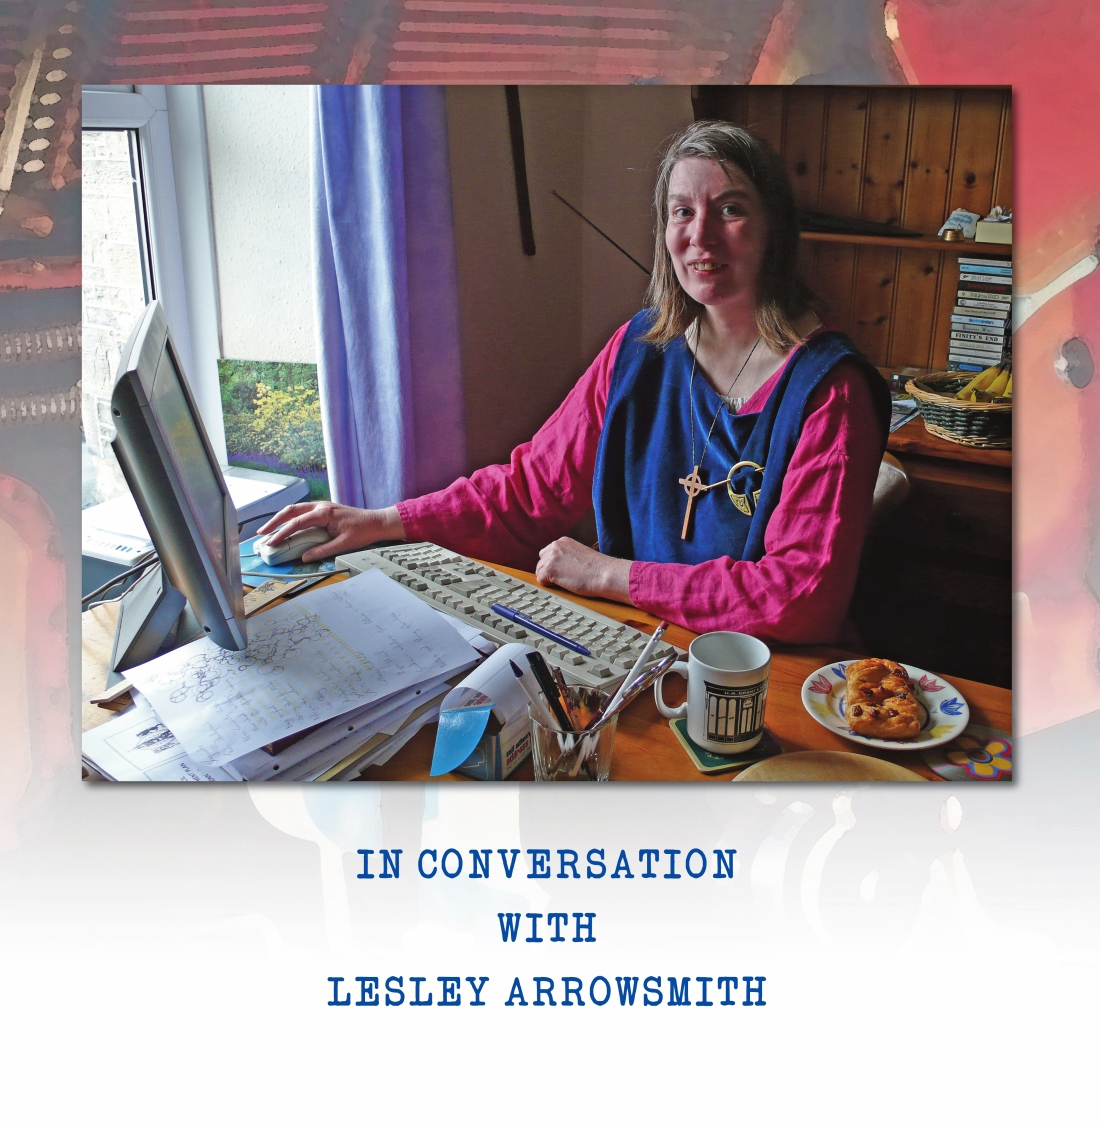 IN CONVERSATION WITH LESLIE ARROWSMITH copy